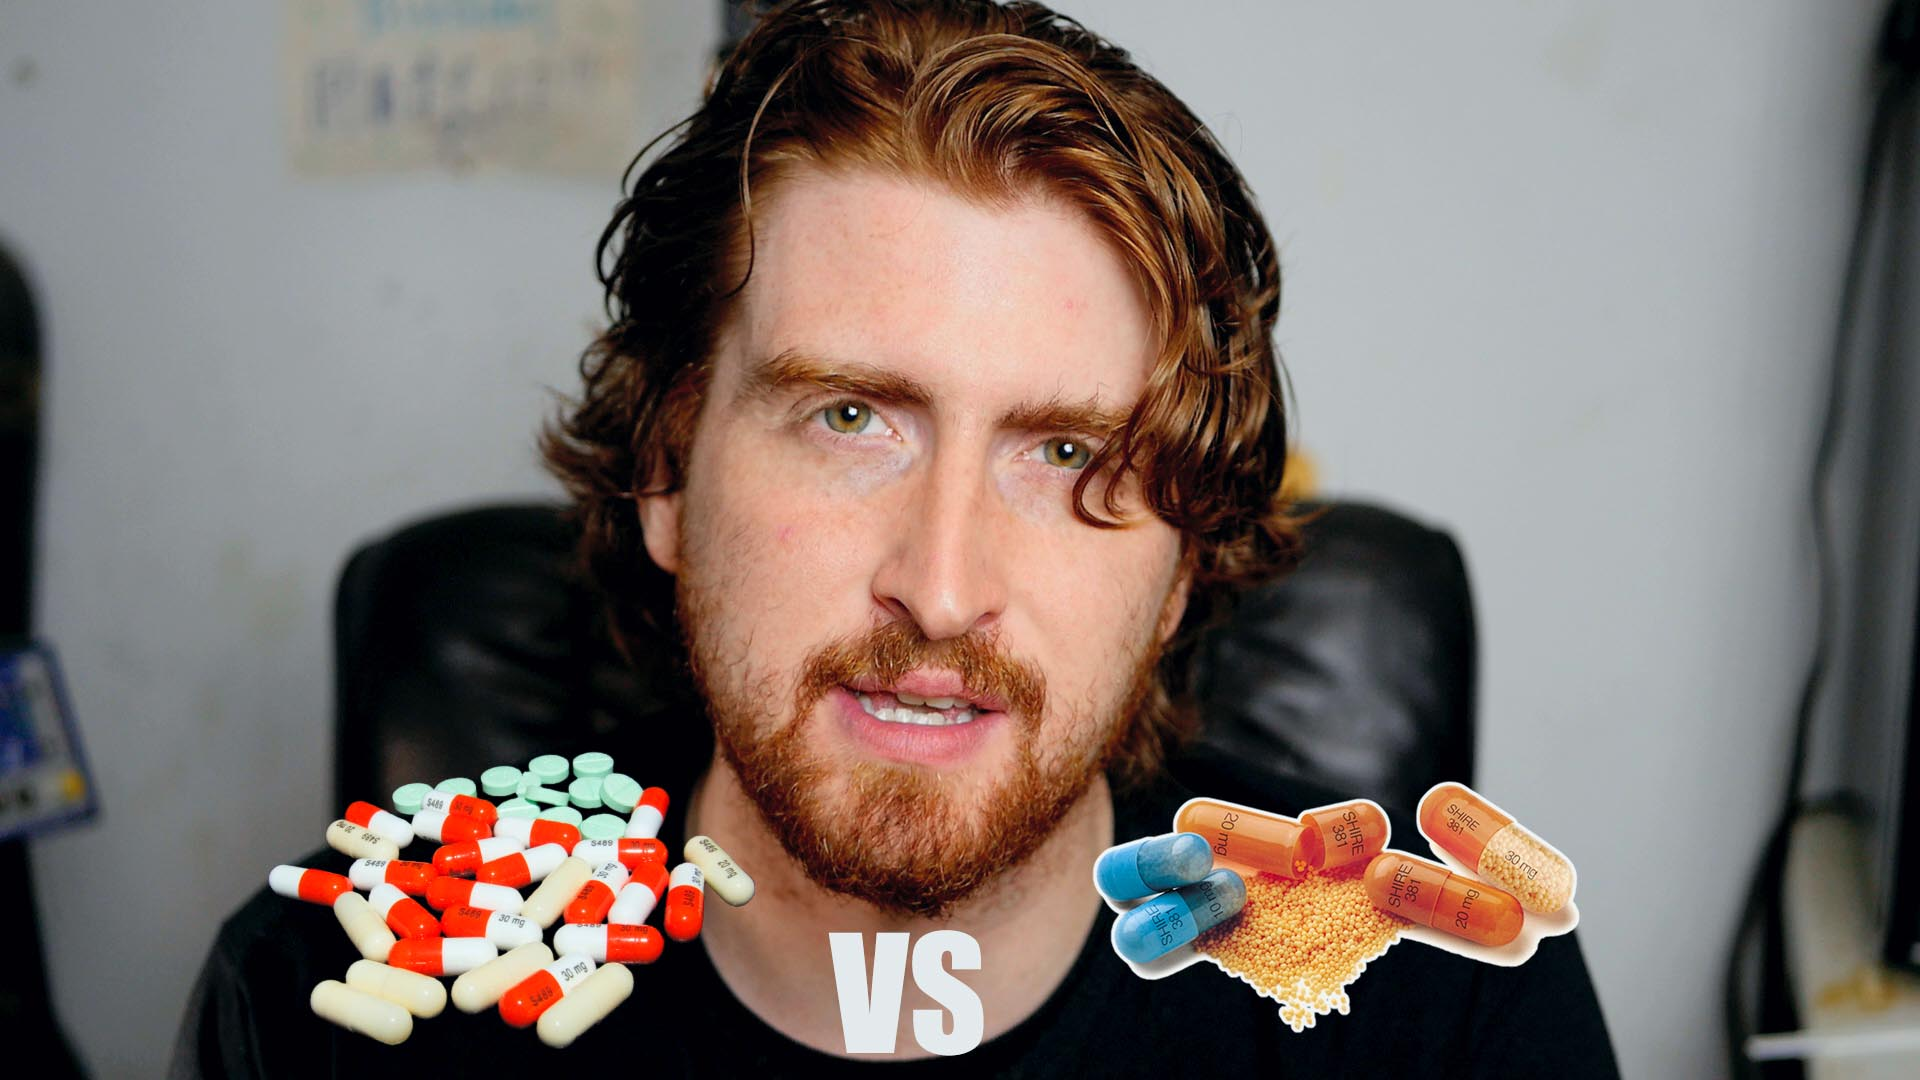 Vyvanse VS Adderall | Similarities and Differences (Video)